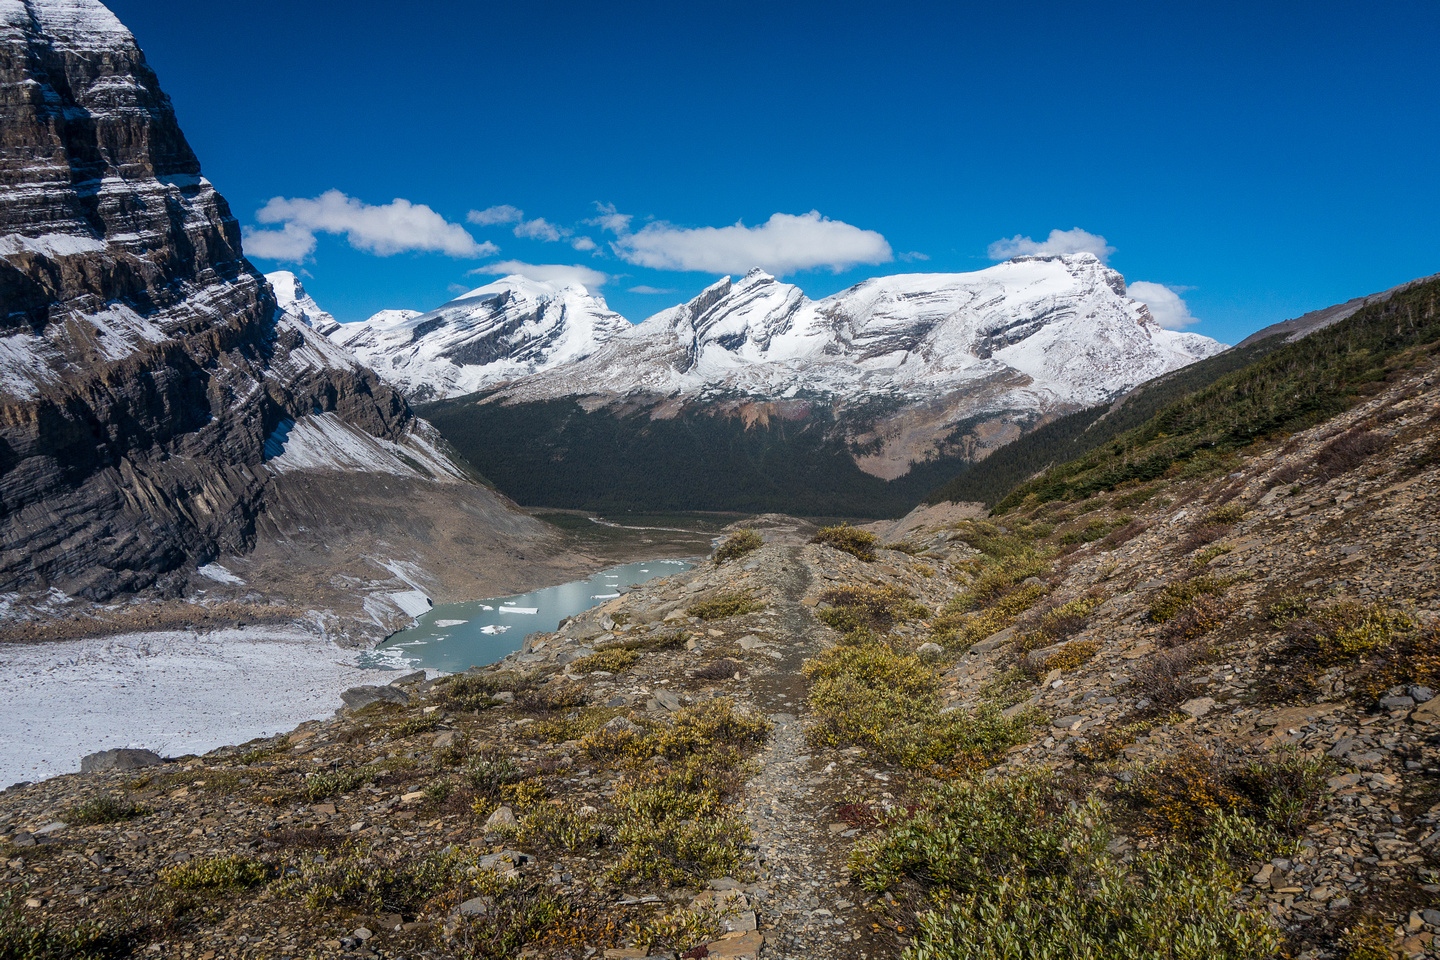 When the trail starts to climb up beside the Robson Glacier it eventually flattens a bit and you get an amazing walk high above the glacier